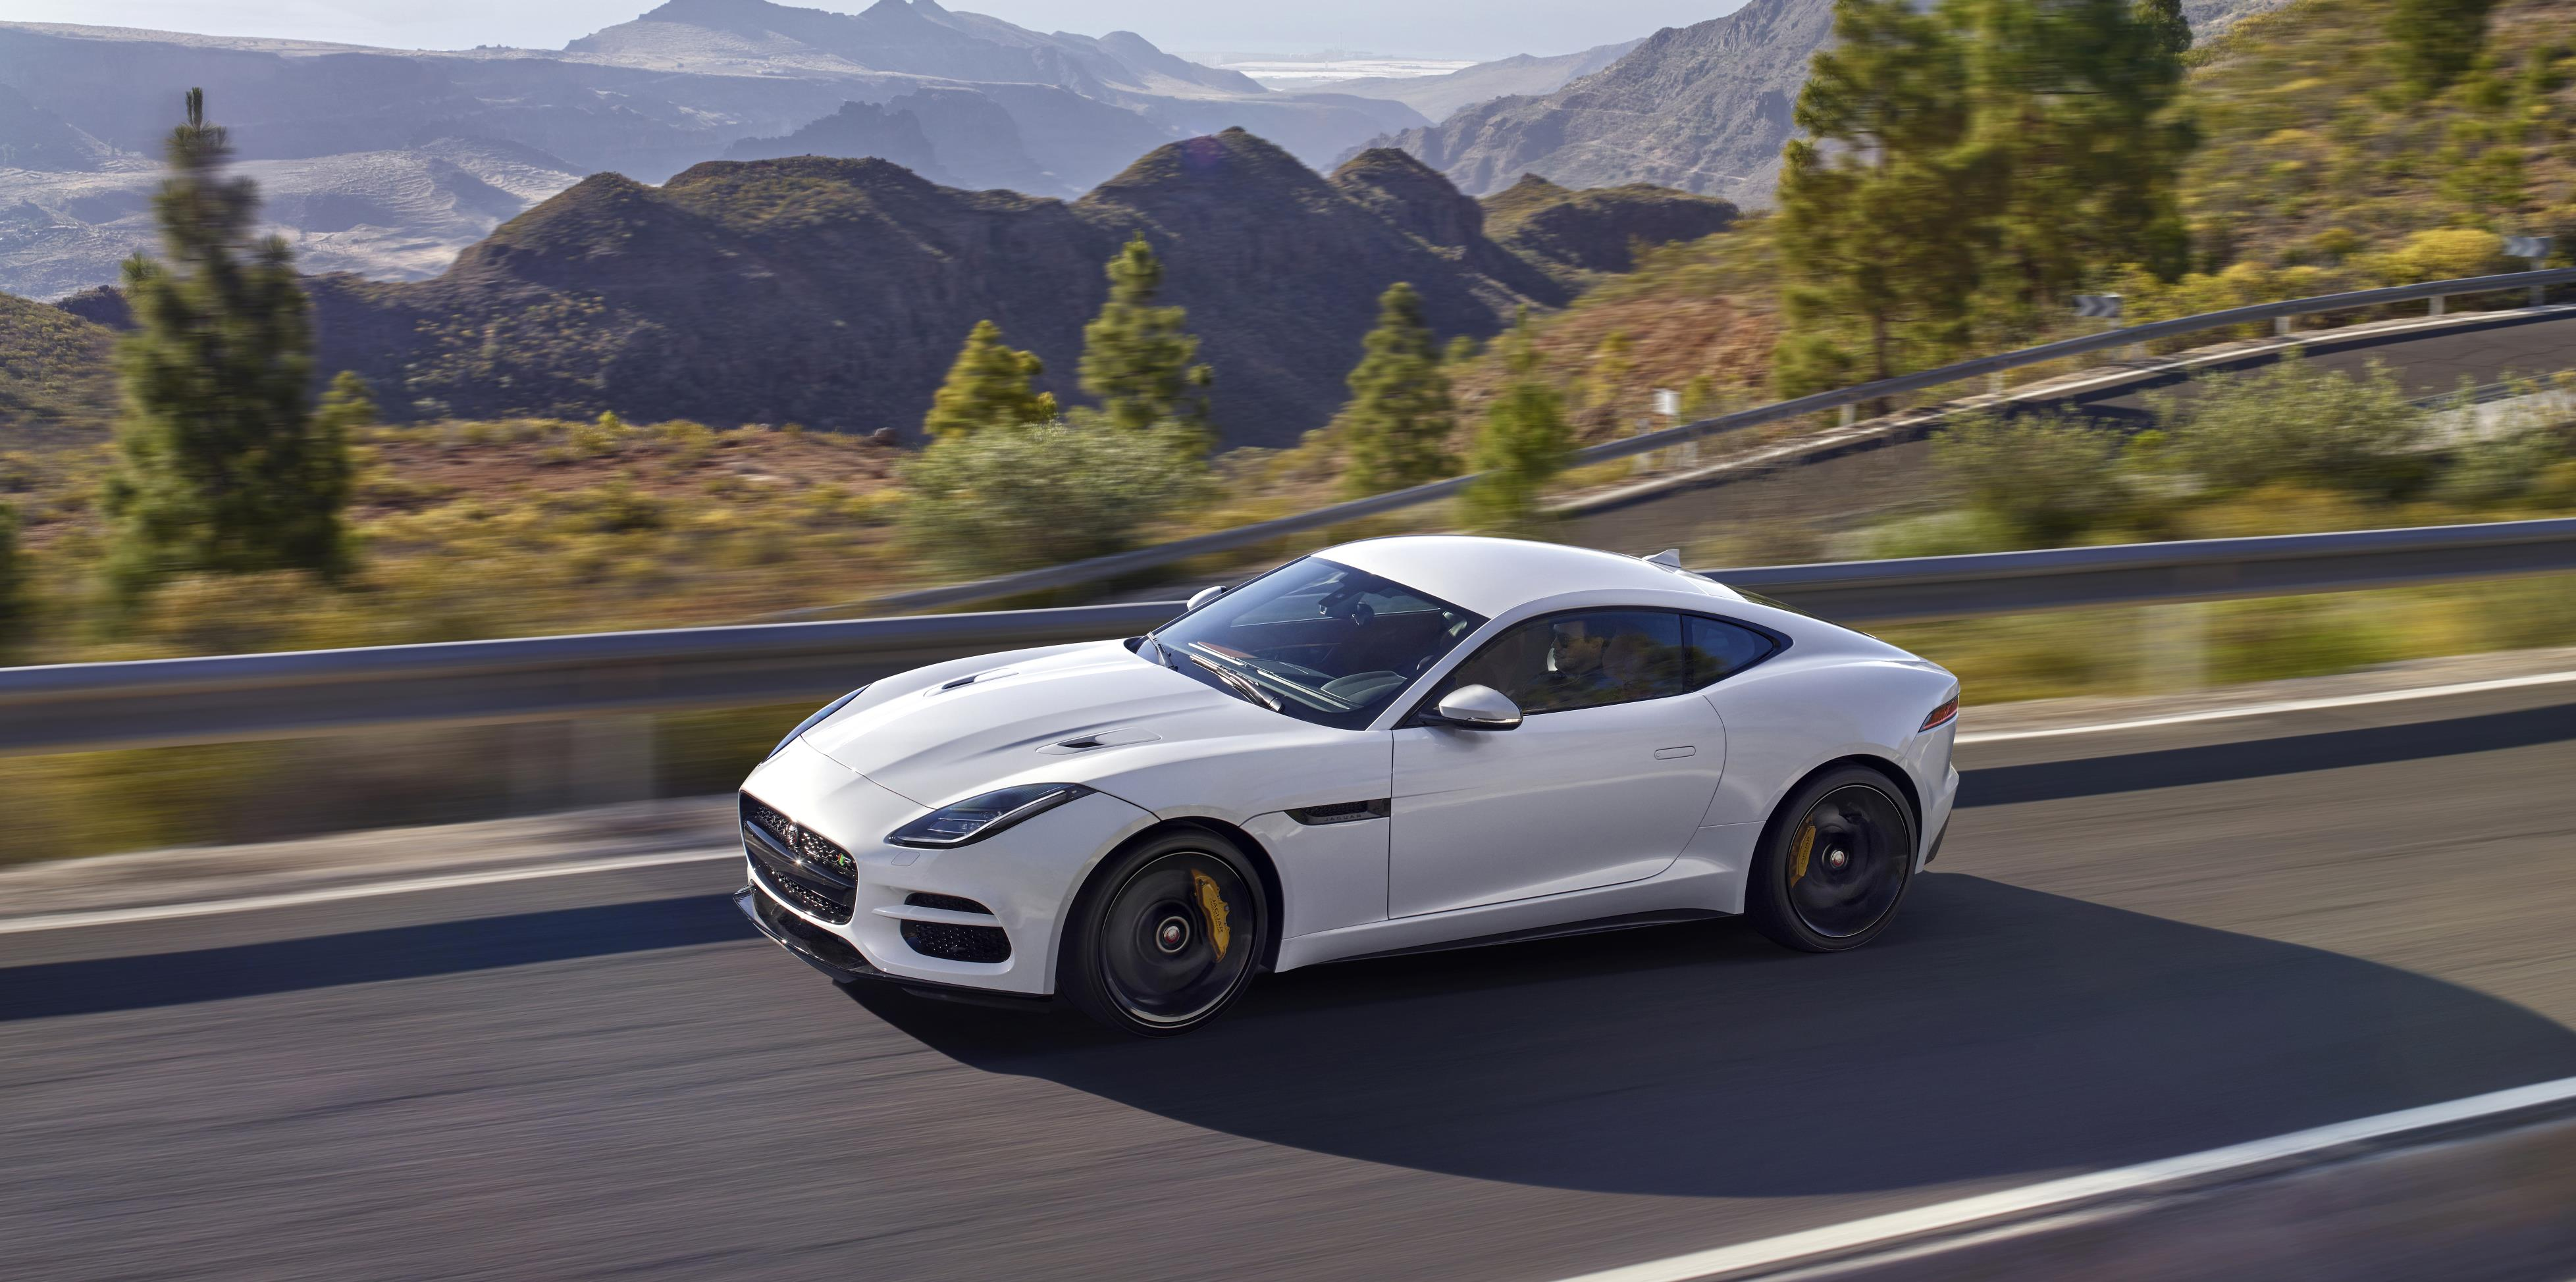 White Jaguar F-Type speeding through stunning countryside